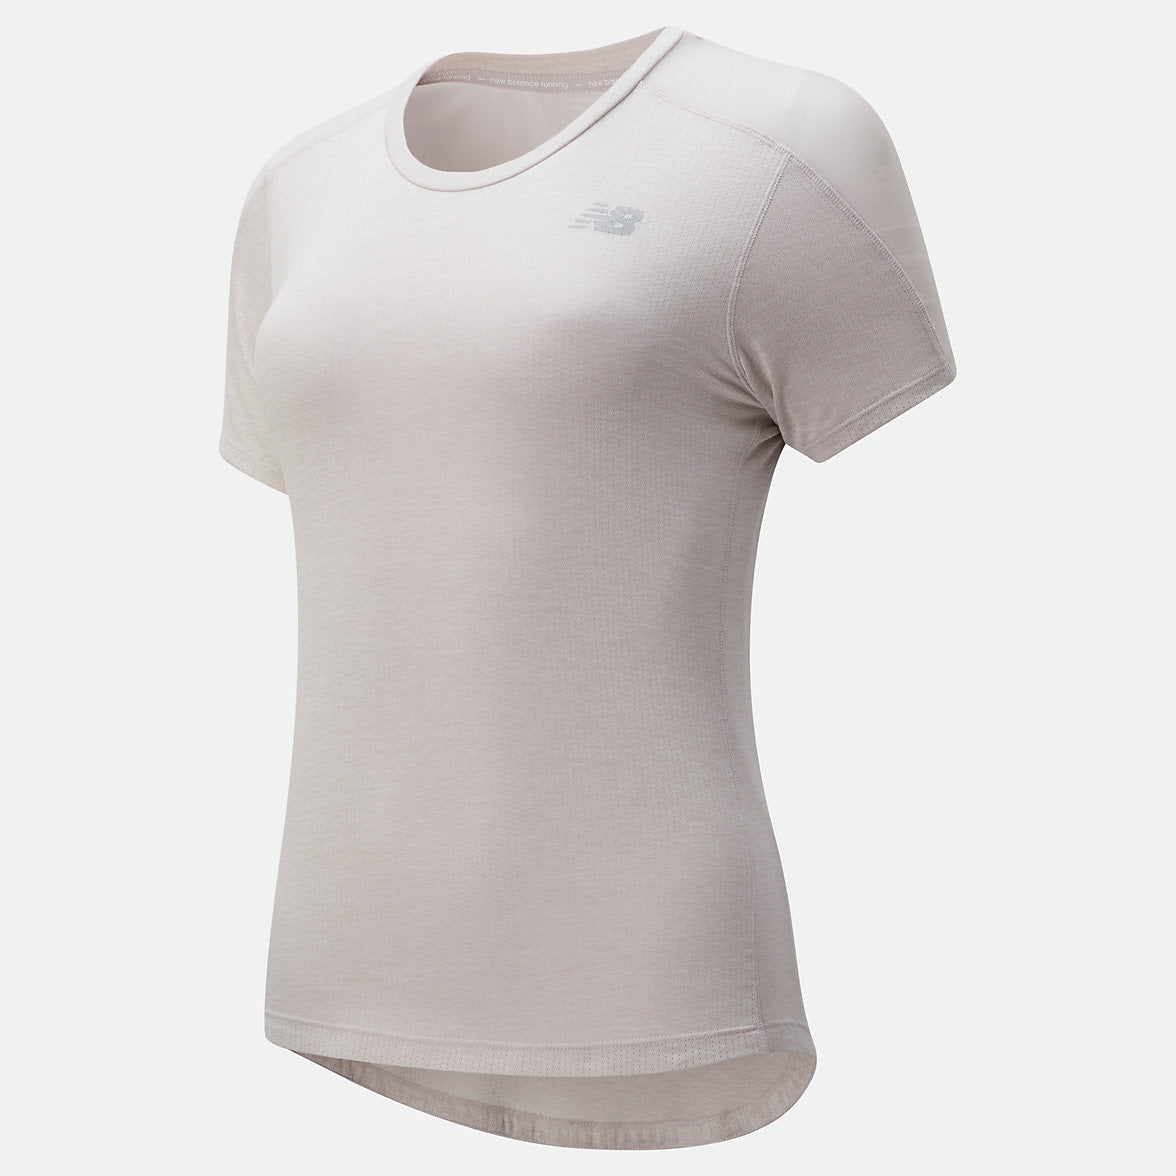 New Balance Running T-Shirt Grey